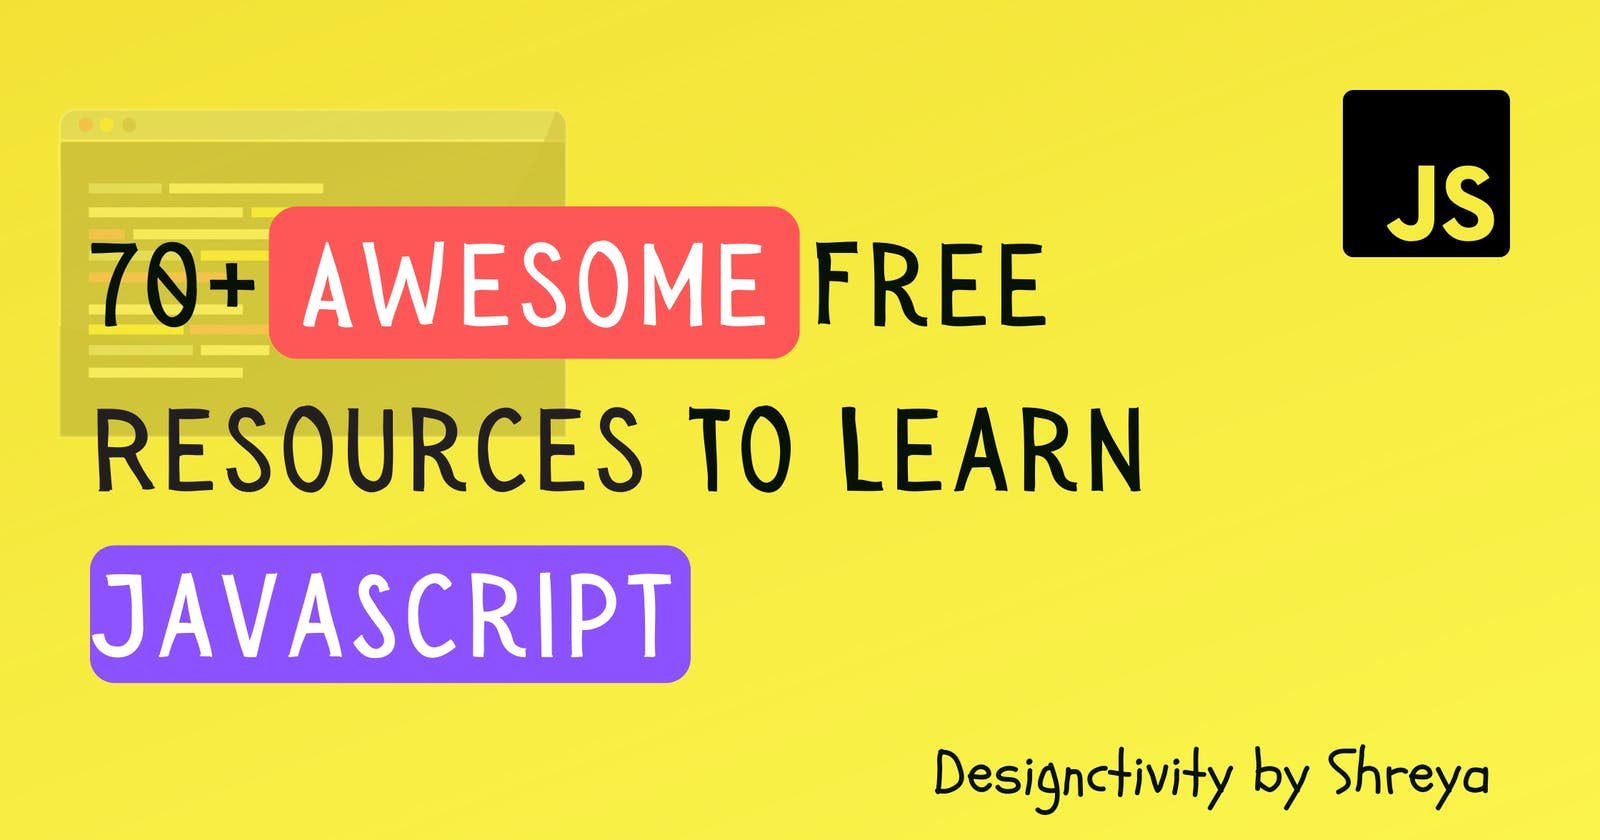 70+ Awesome Free Resources To Learn JavaScript